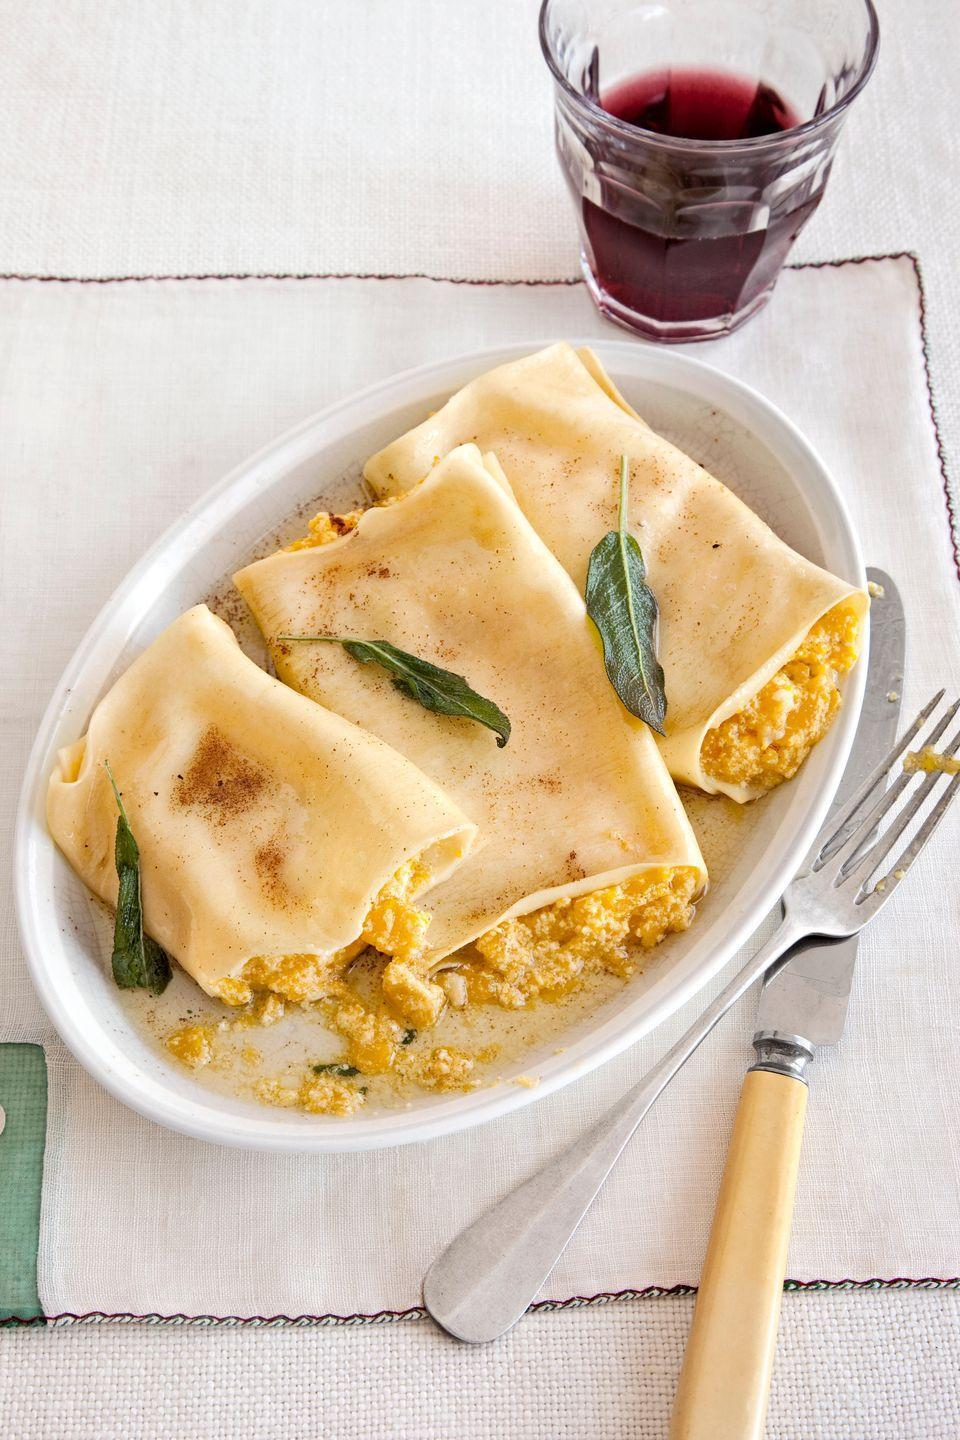 """<p>No need to make fresh pasta for these silky ricotta-pumpkin cannelloni—oven-ready lasagna sheets work just fine. </p><p><strong><a href=""""https://www.countryliving.com/food-drinks/recipes/a2995/pumpkin-cannelloni-sage-brown-butter-sauce-recipe/"""" rel=""""nofollow noopener"""" target=""""_blank"""" data-ylk=""""slk:Get the recipe."""" class=""""link rapid-noclick-resp"""">Get the recipe.</a></strong></p>"""